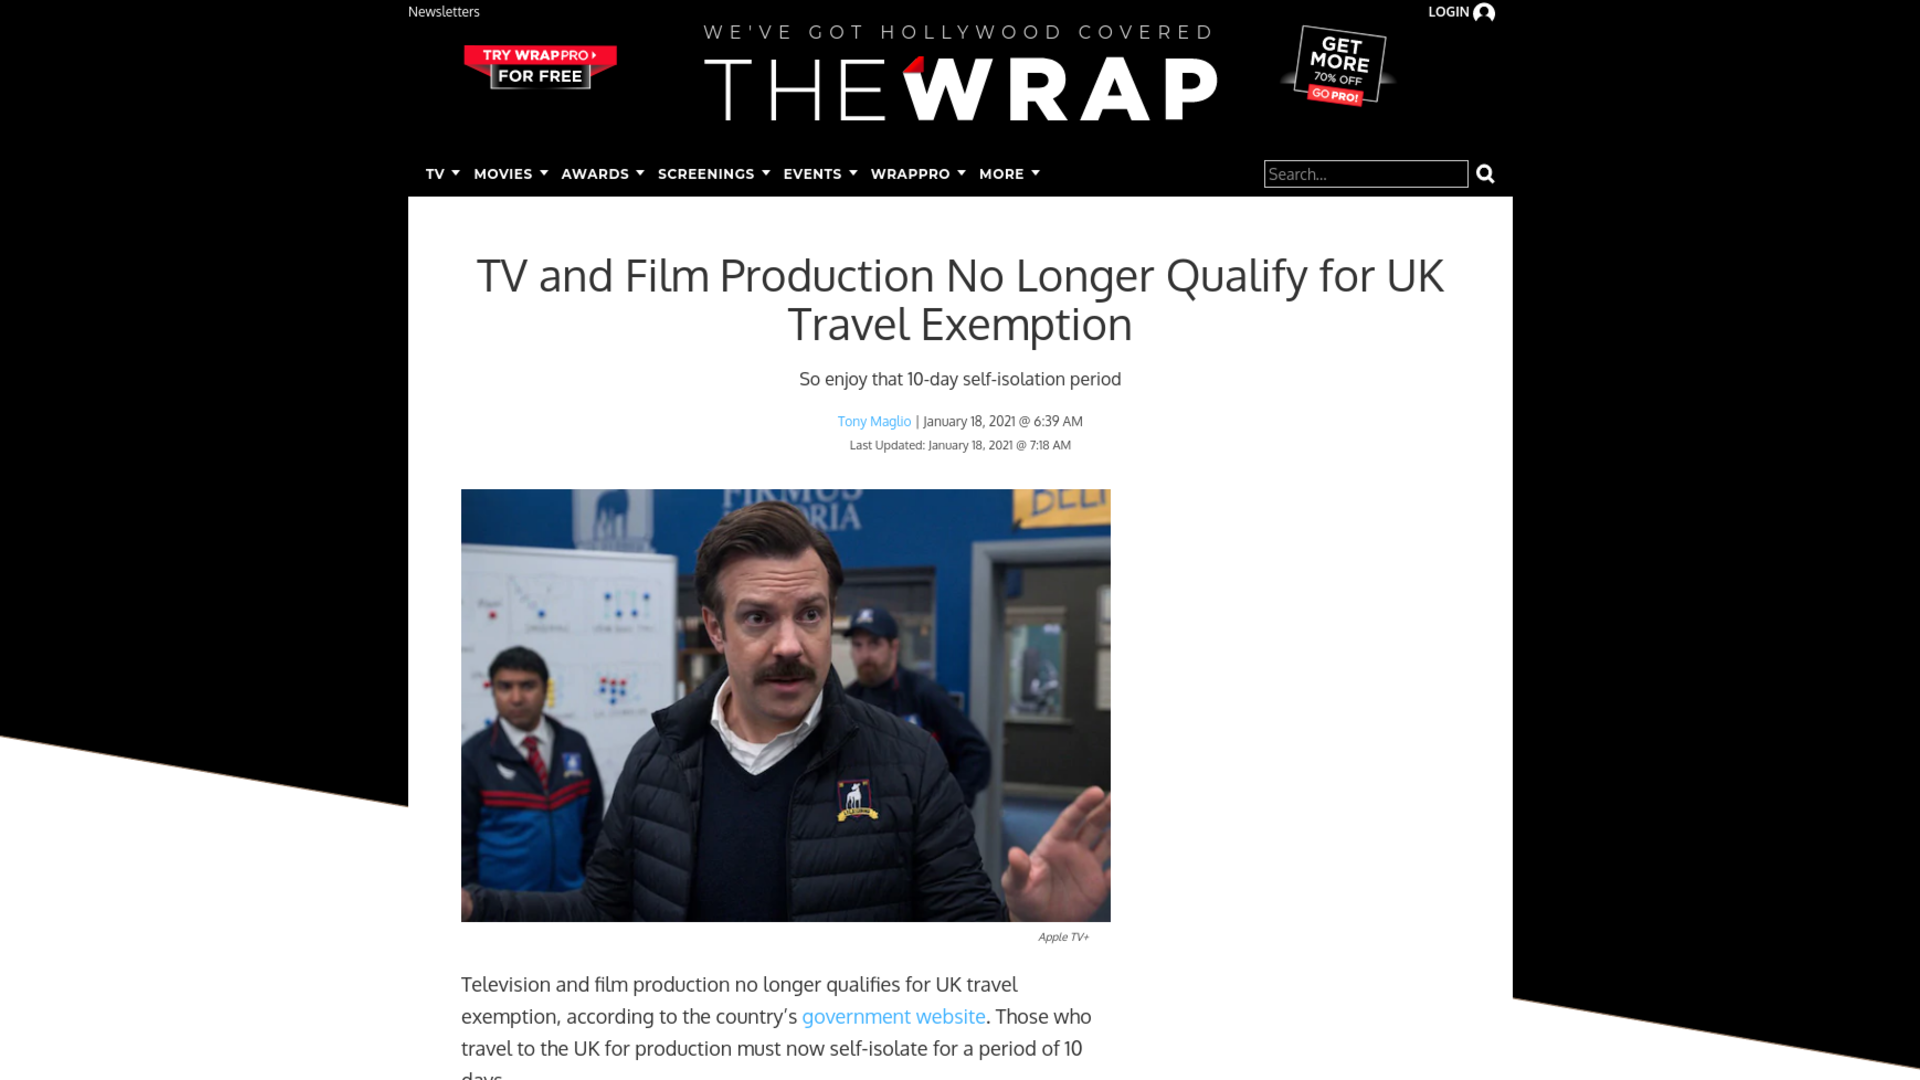 Fairness Rocks News TV and Film Production No Longer Qualify for UK Travel Exemption